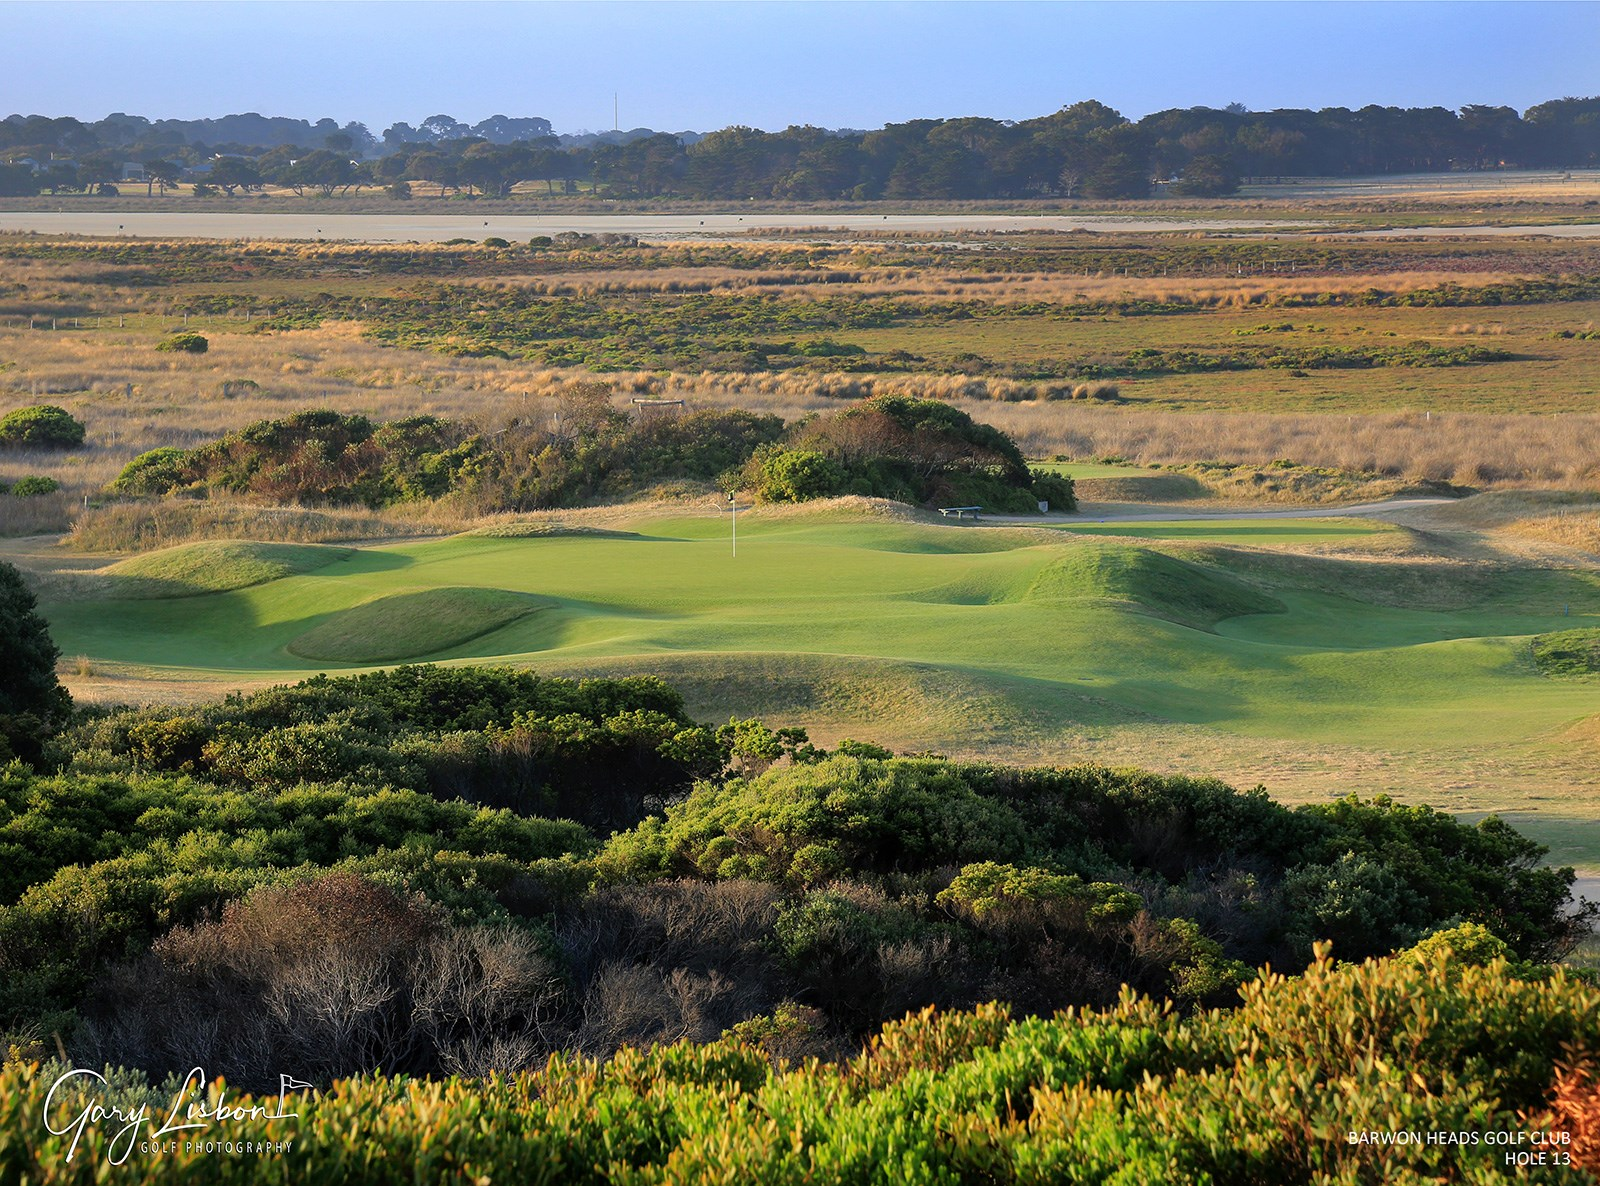 Barwon Heads Golf Club Hole 13